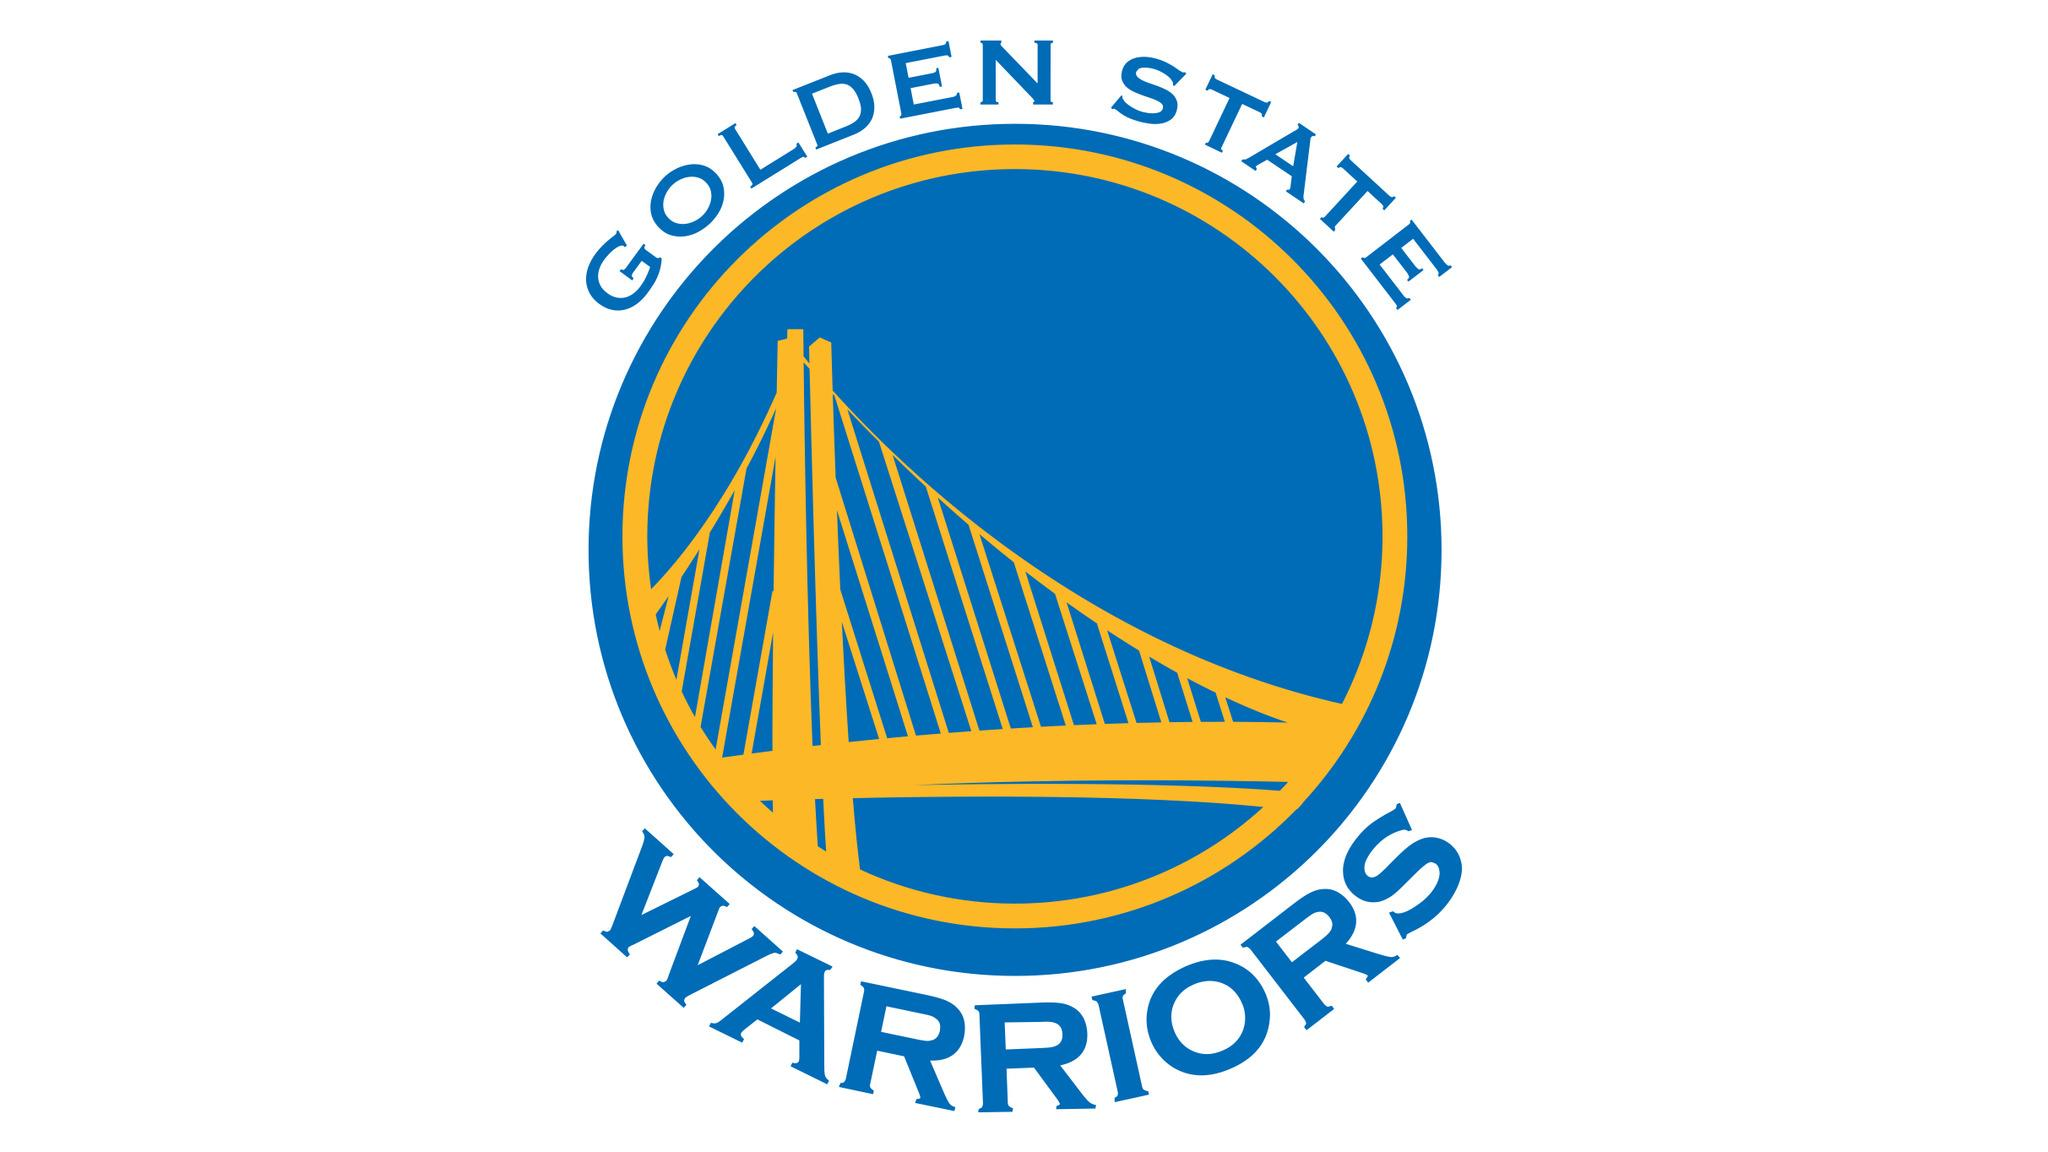 Golden State Warriors vs. Atlanta Hawks at Oracle Arena